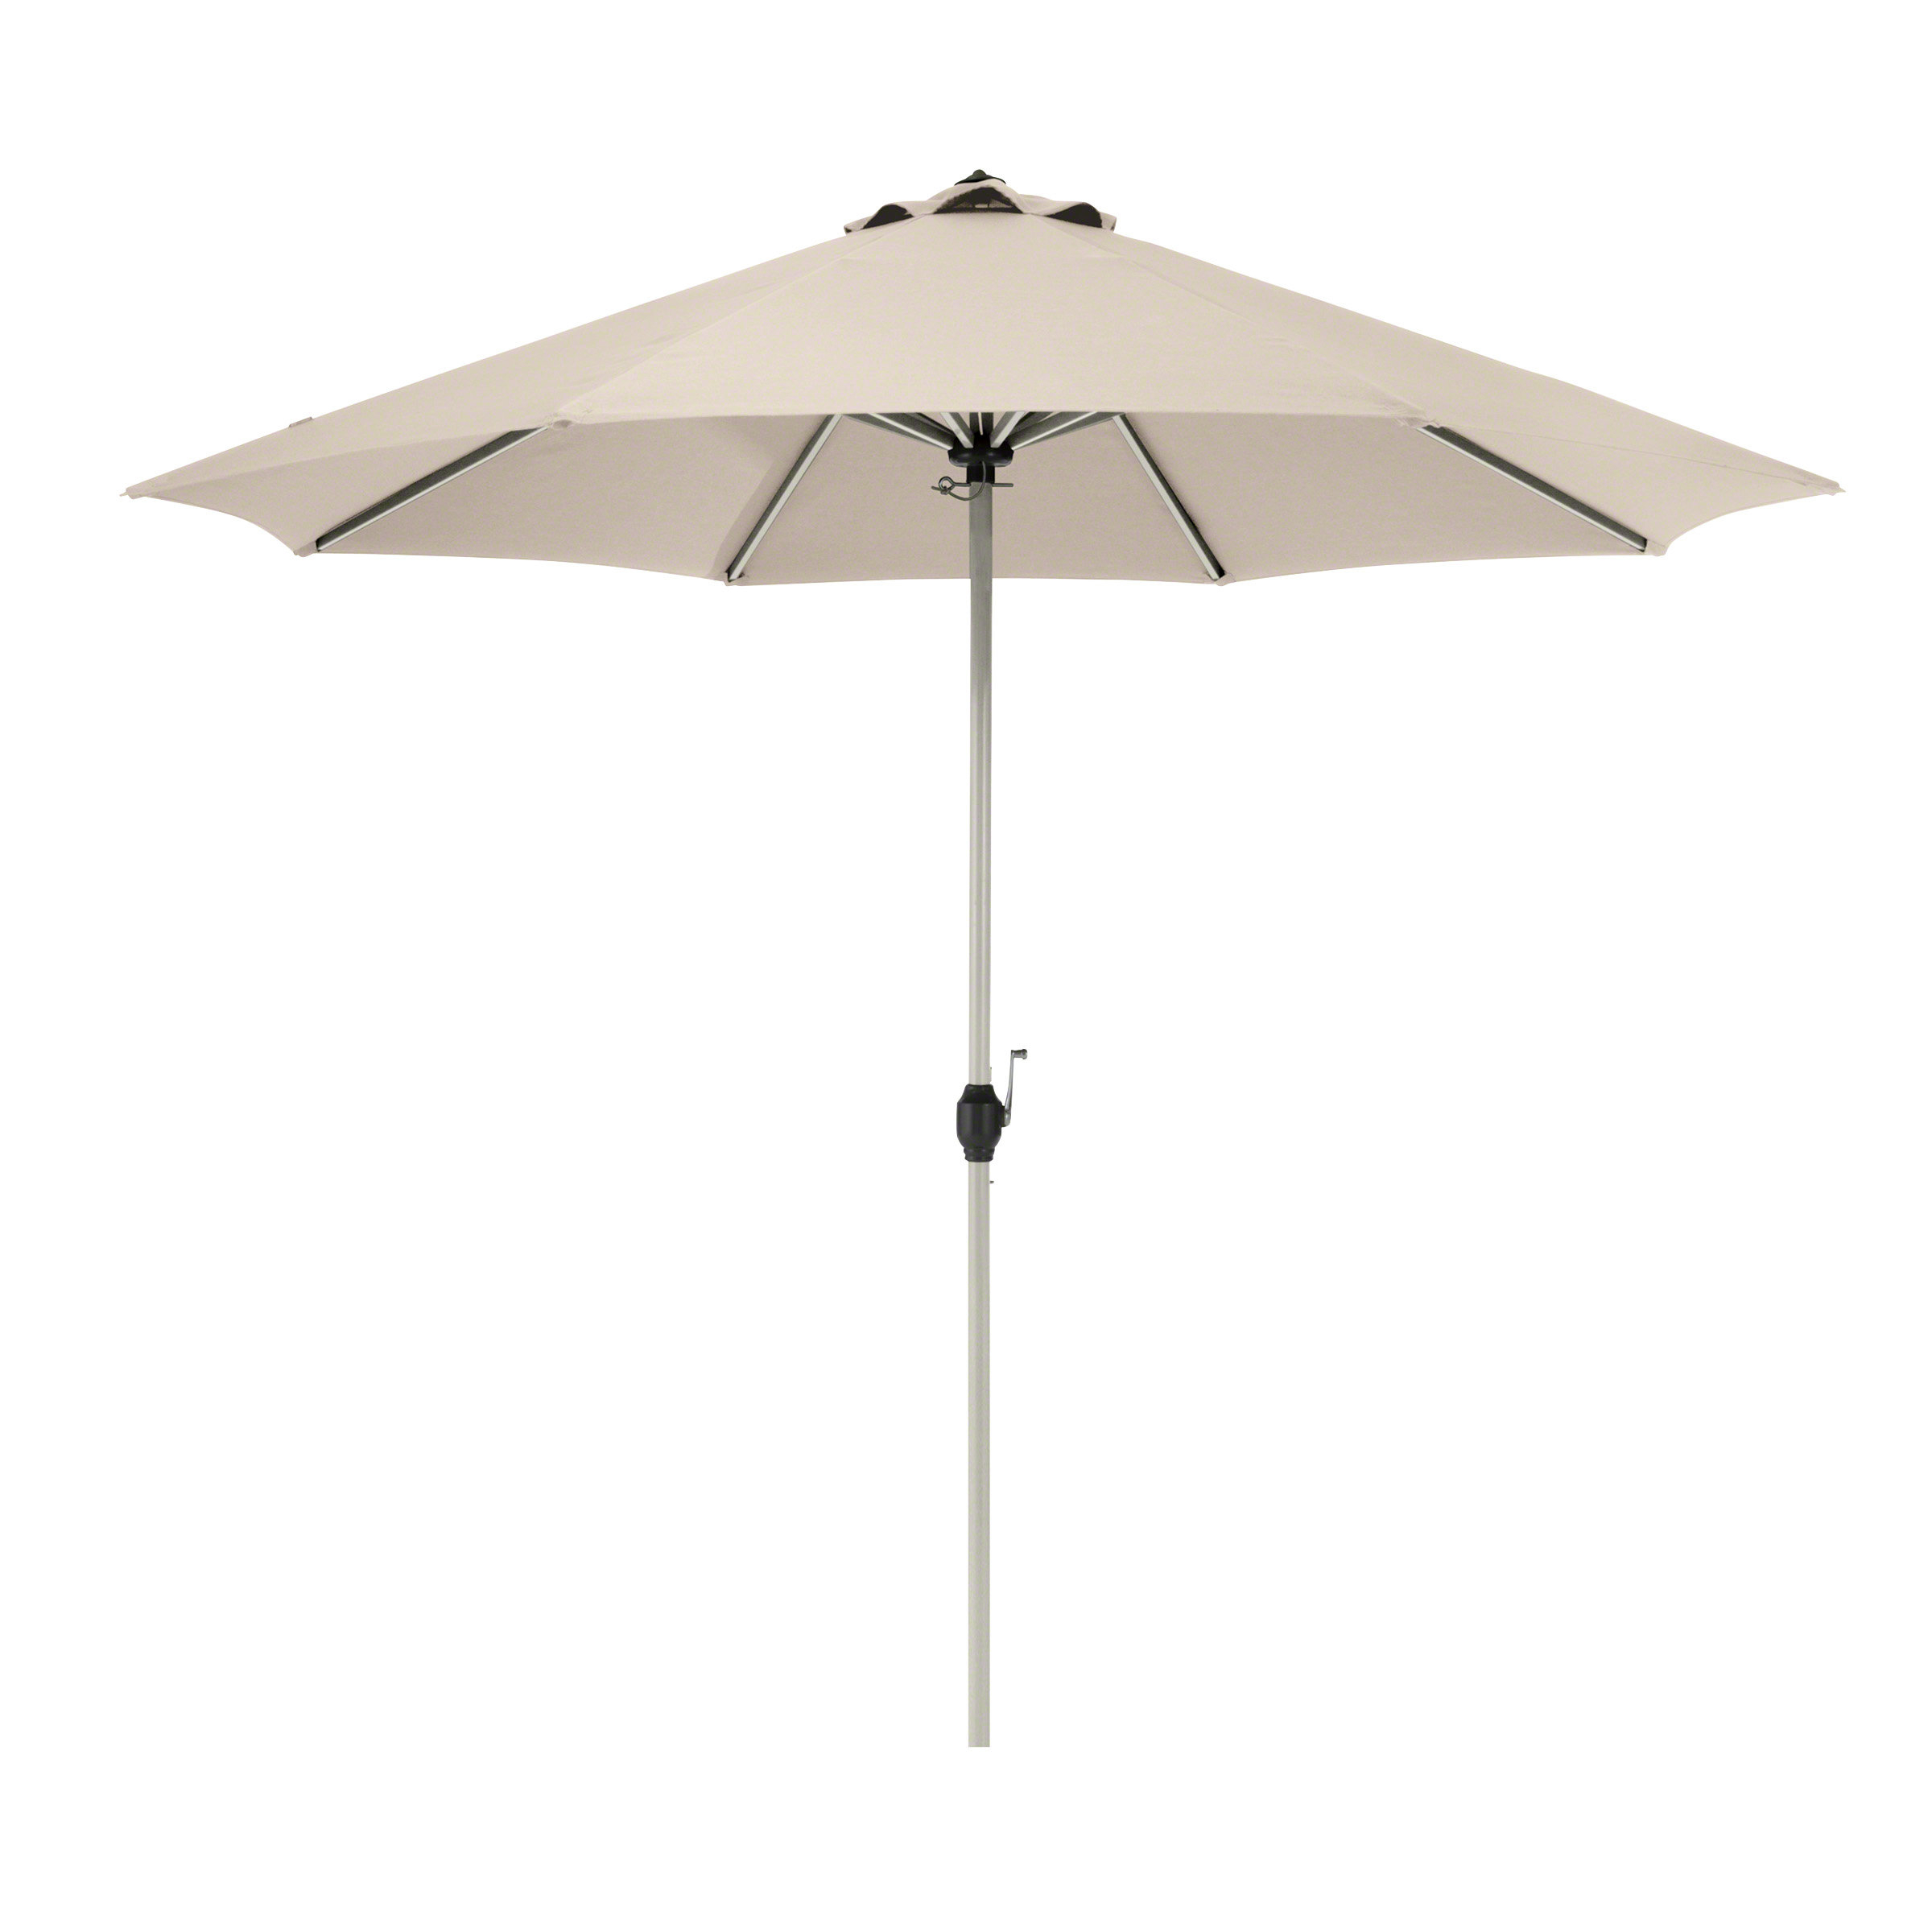 Newest Cannock Market Umbrellas Inside Searcy Fadesafe™ 9' Market Umbrella (View 18 of 20)